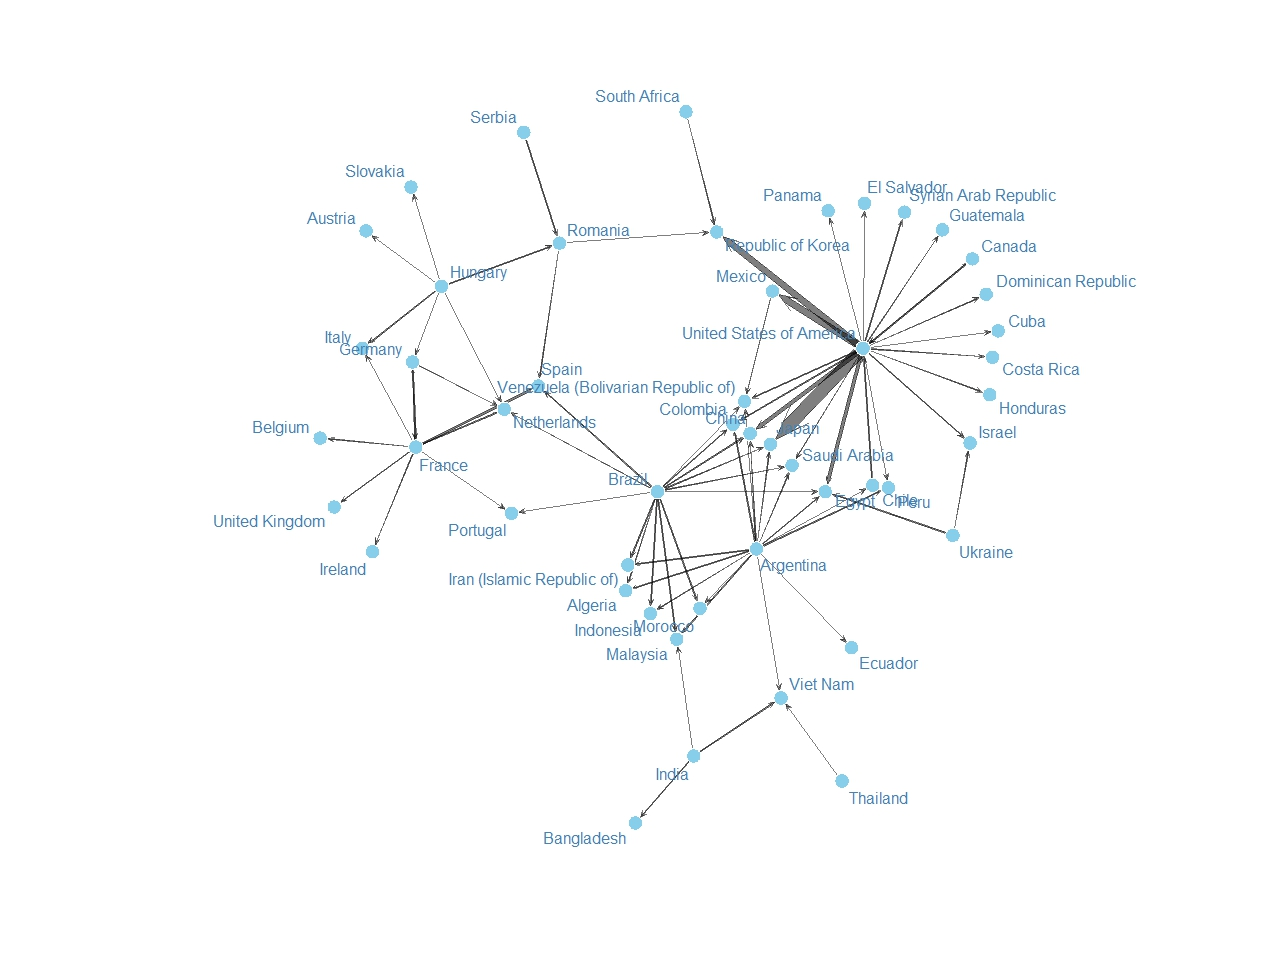 Maize Trade Part I Generate The Network Diagram R Bloggers